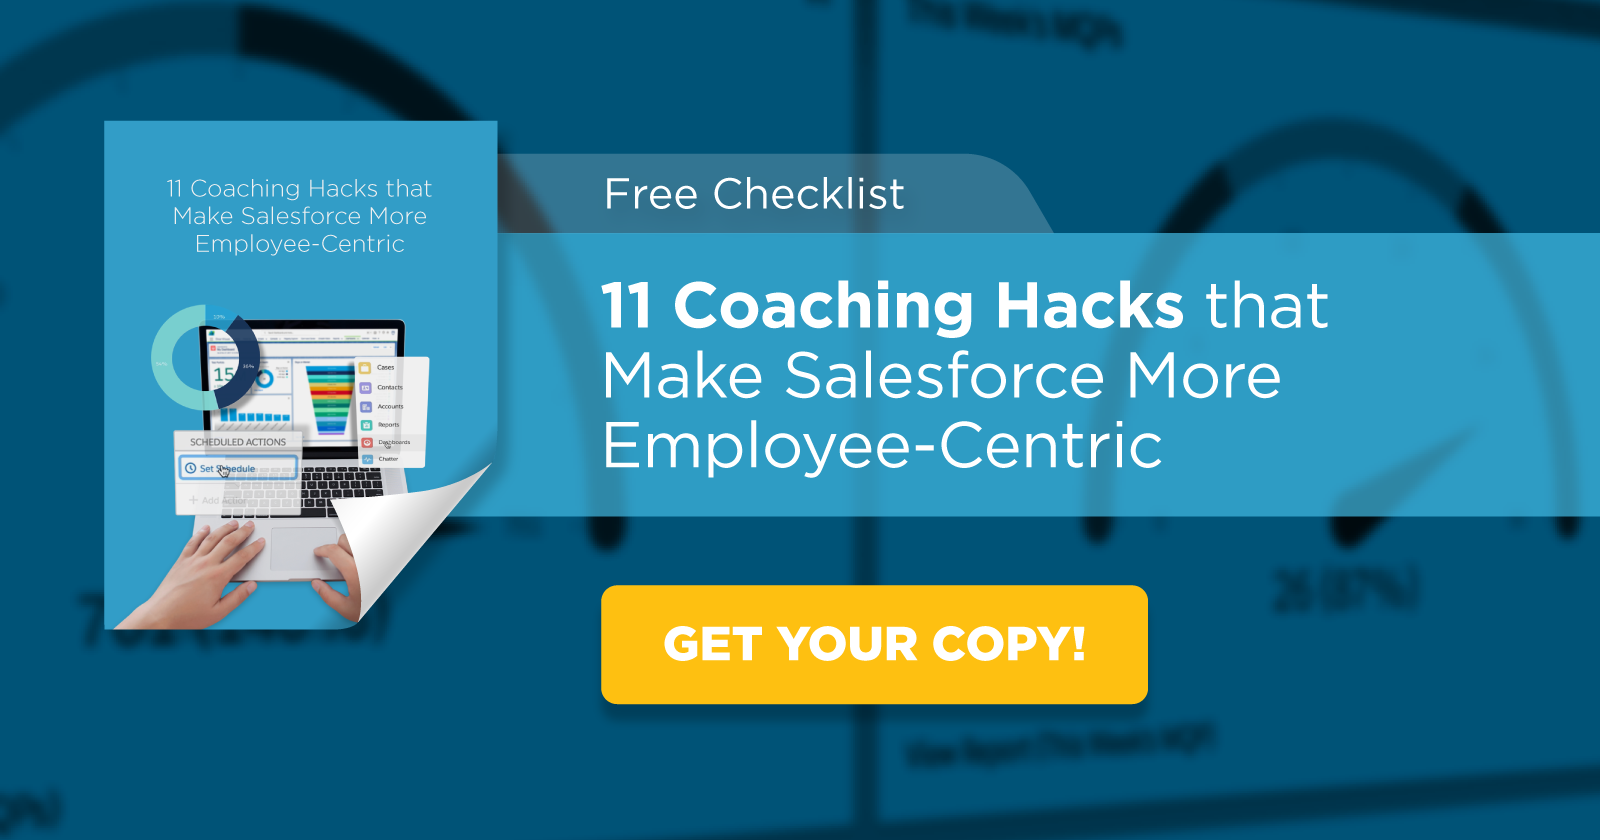 Coaching Hacks CTA